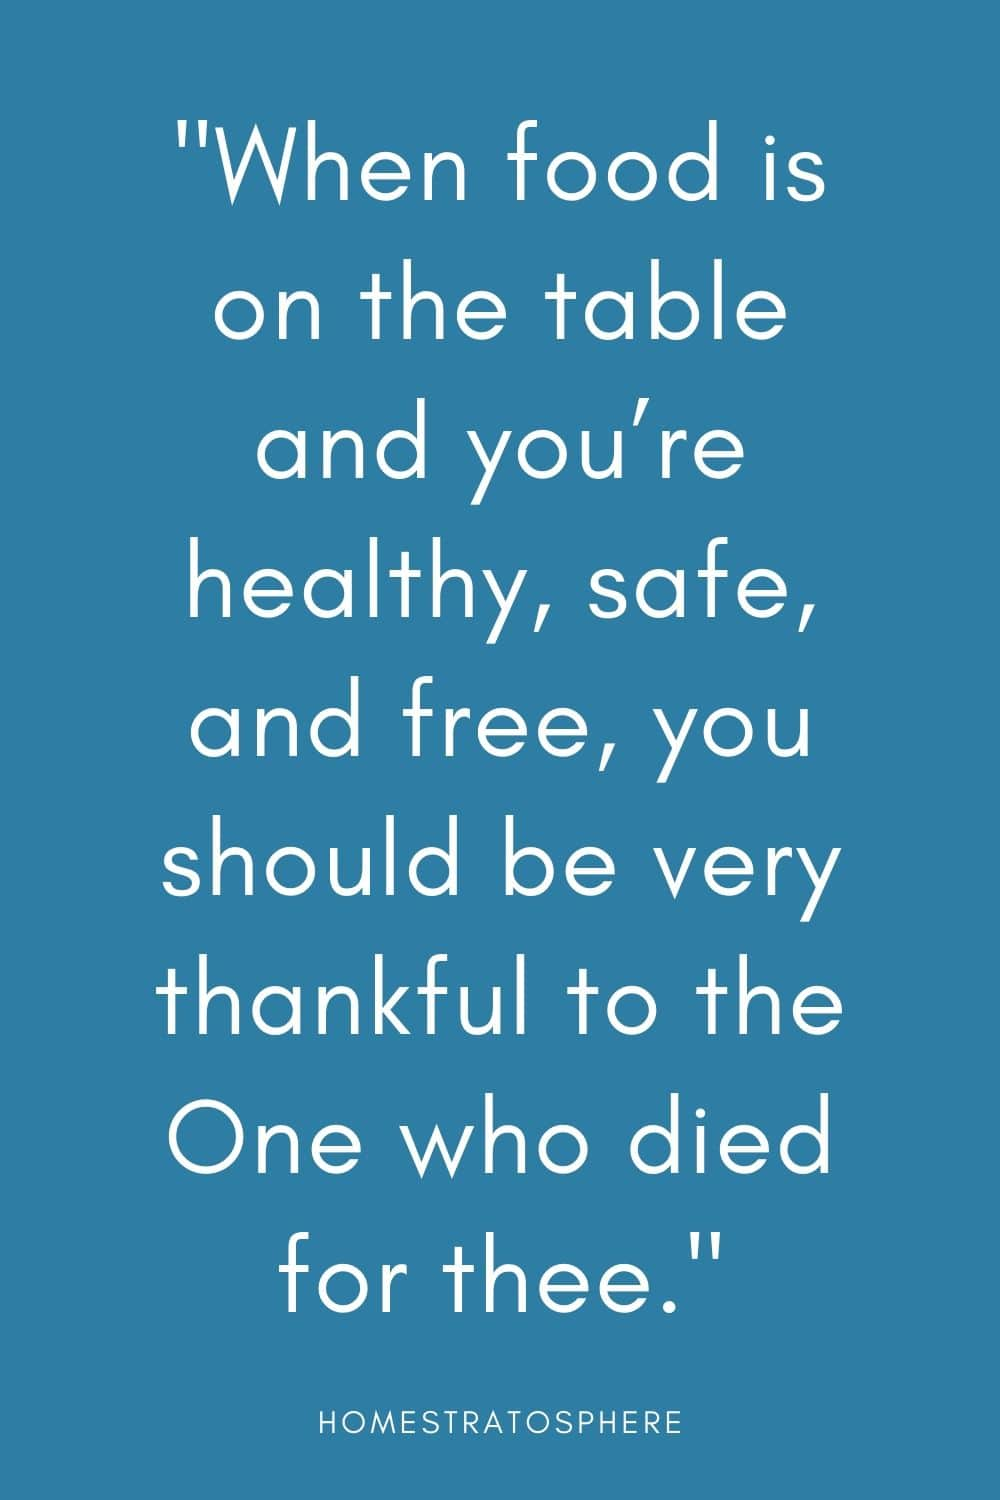 """When food is on the table and you're healthy, safe, and free, you should be very thankful to the One who died for thee."""